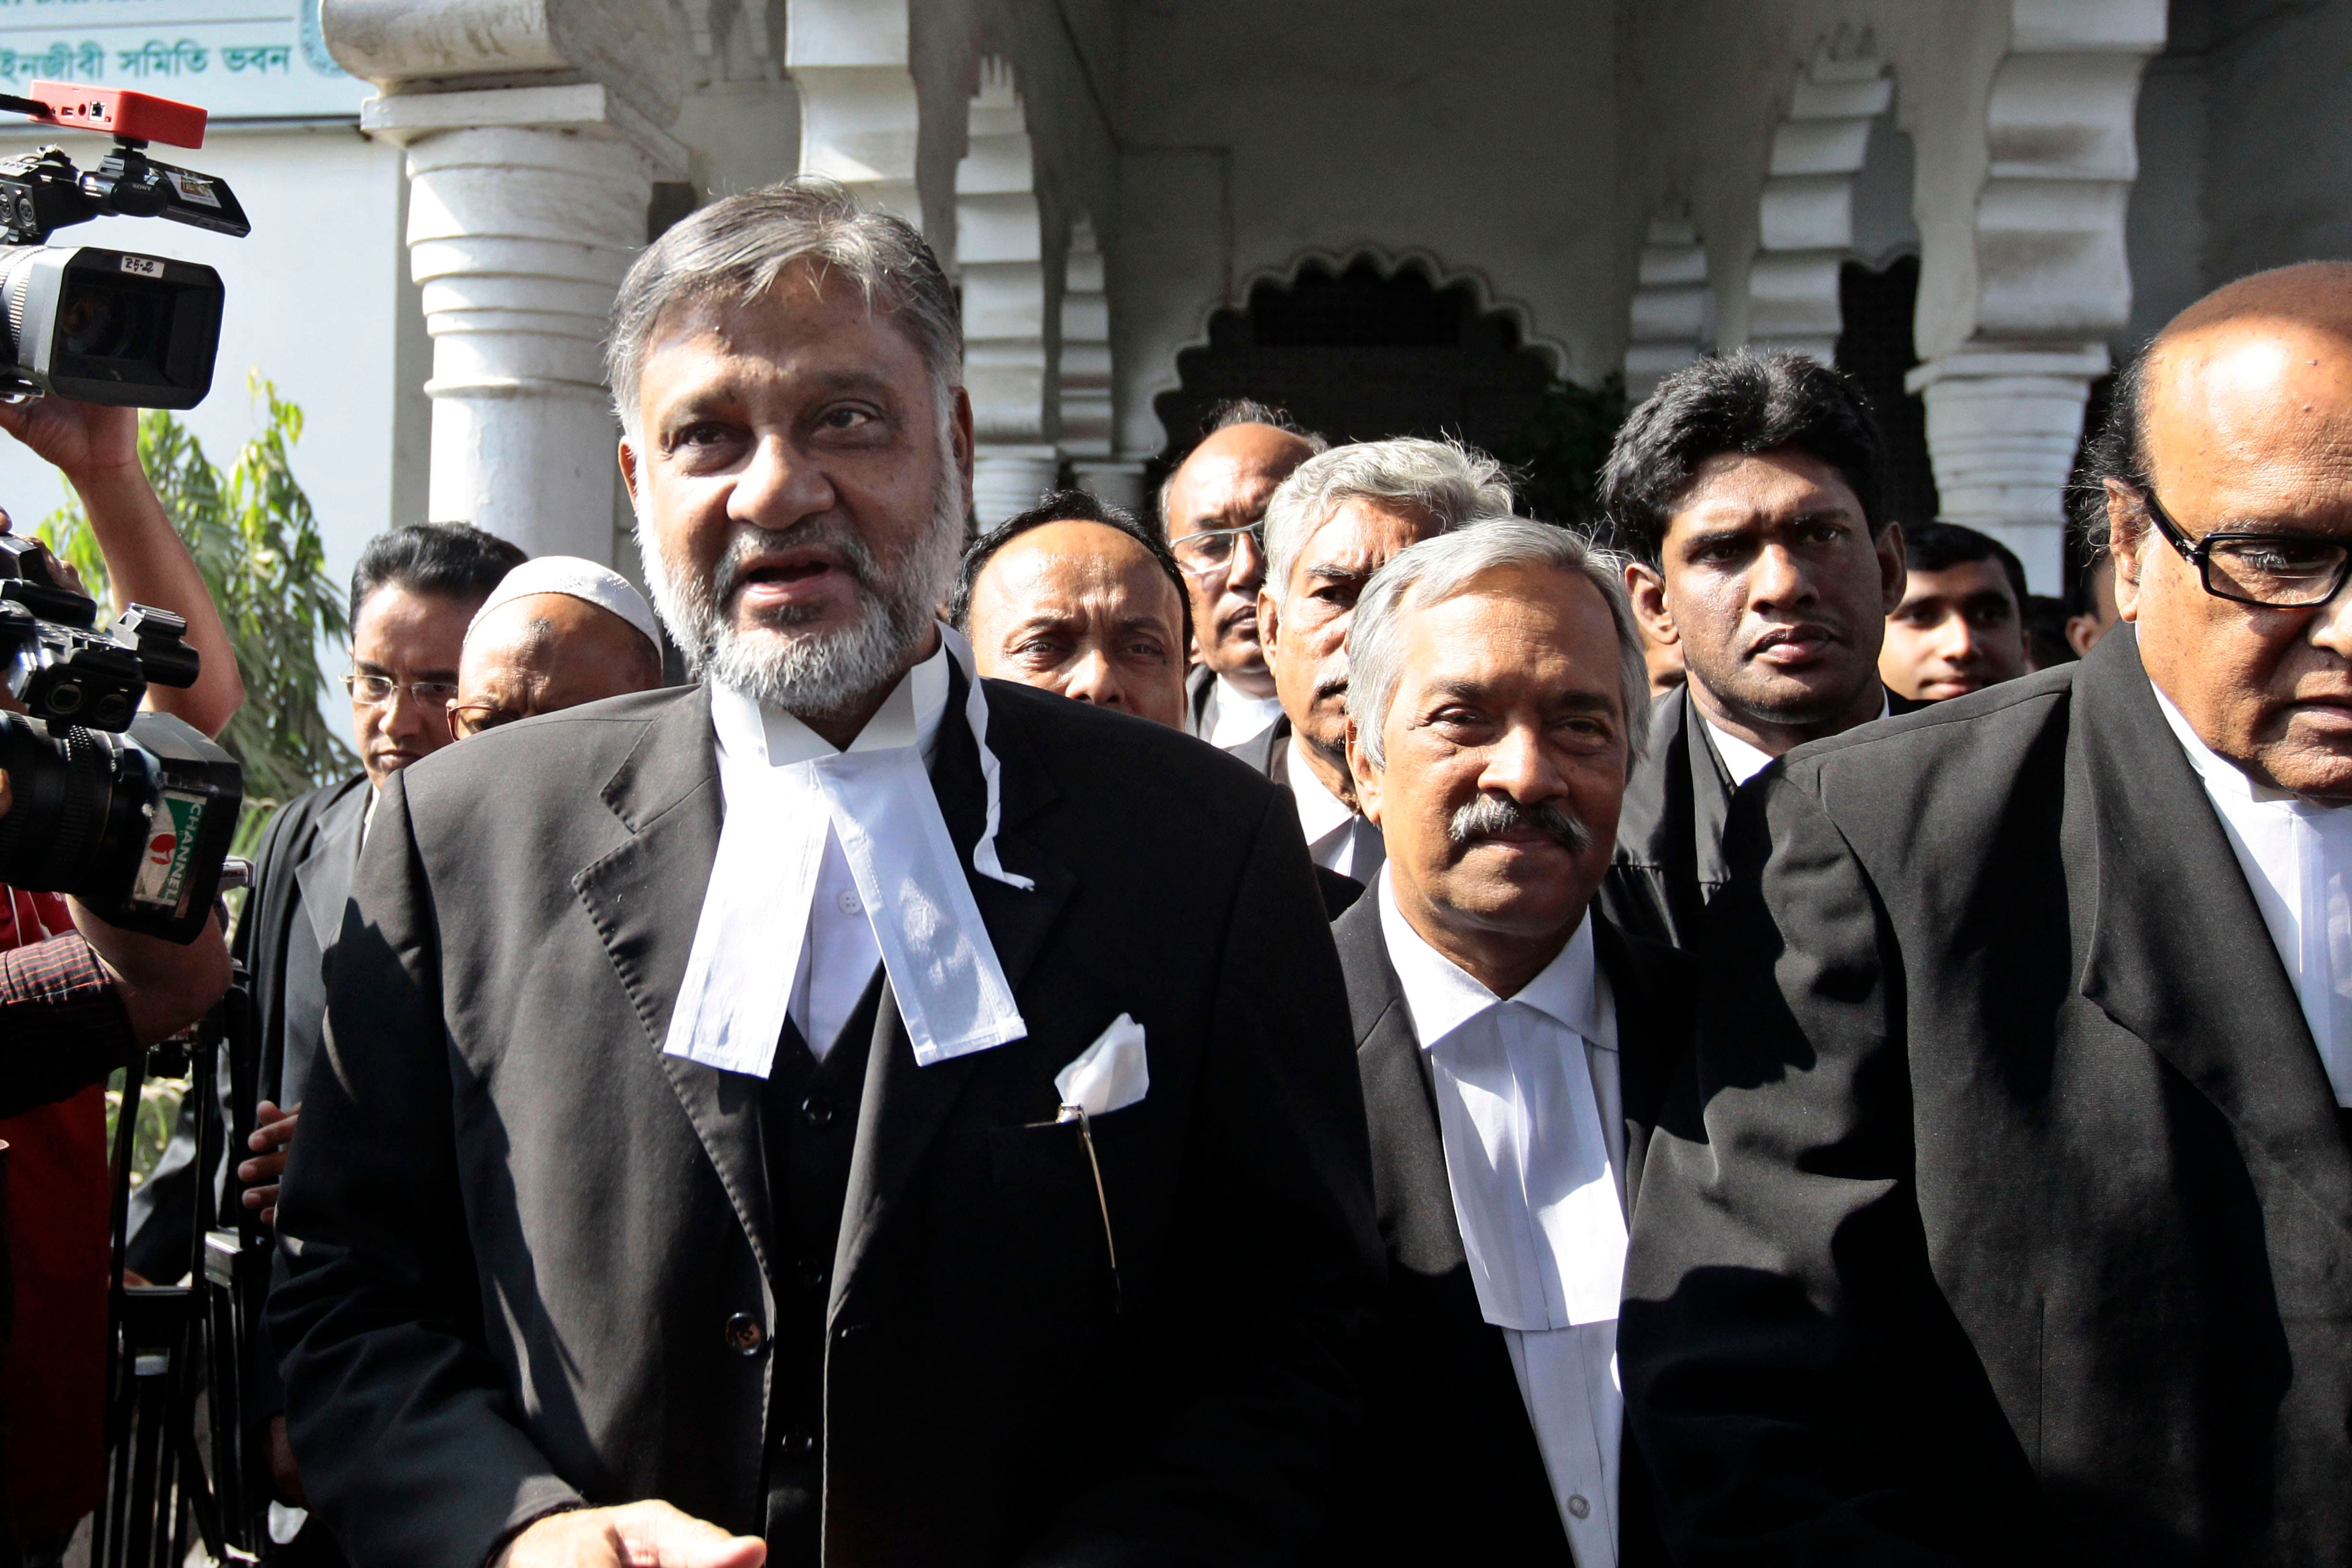 Abdur Razzak, left, lawyer of Islamist opposition leader Abdul Quader Mollah, talks to the media outside a court in Dhaka, Bangladesh. Mollah, convicted of war crimes during the nation`s war of independence against Pakistan in 1971, was due to be executed at 00:01 Wednesday, but lawyers went to the home of Judge Syed Mahmud Hossain and secured a postponement.